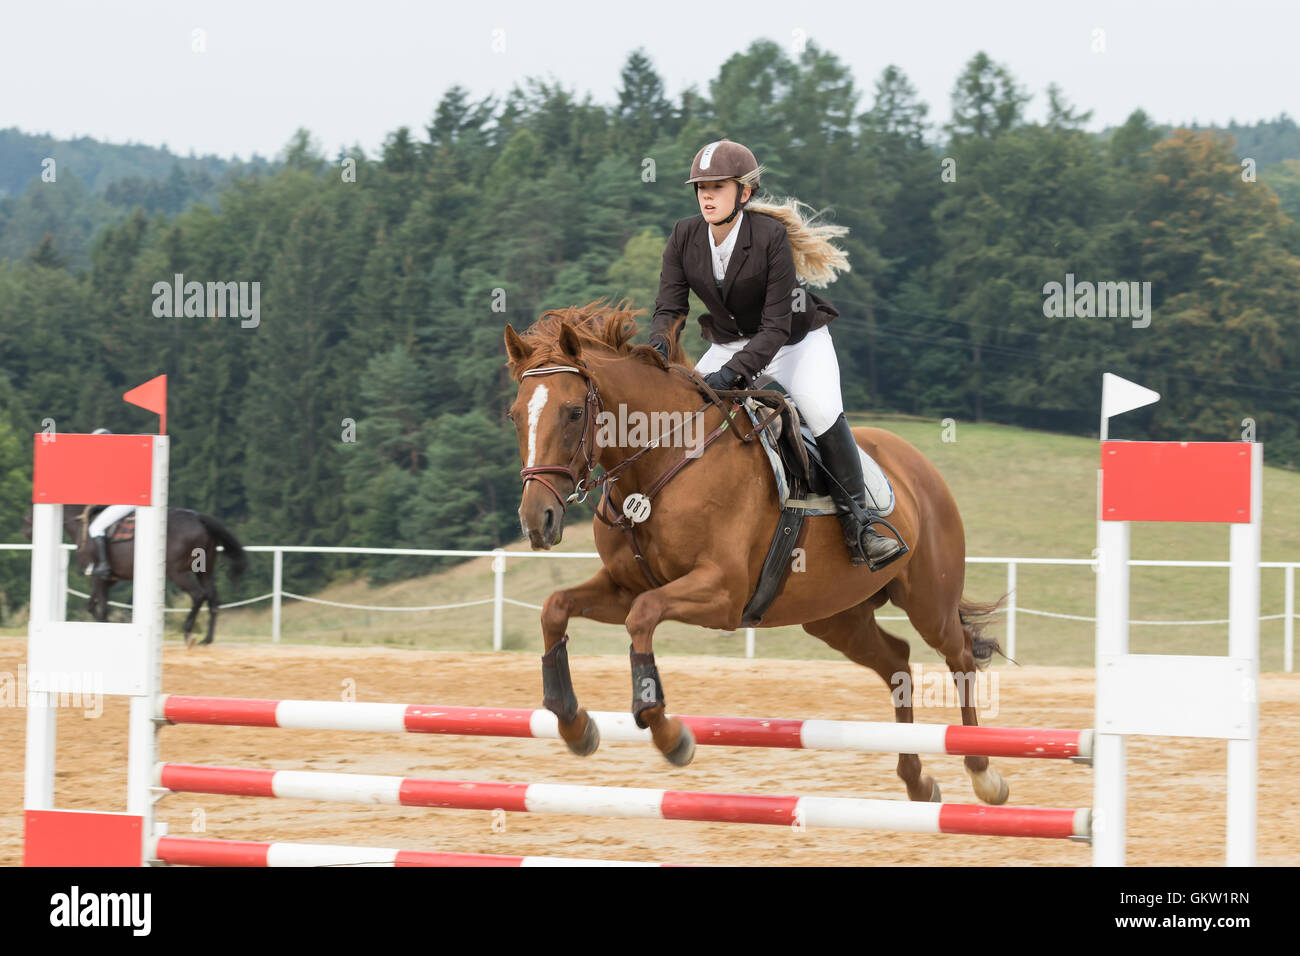 Beautiful blond horsewoman during the jump on a horse. - Stock Image